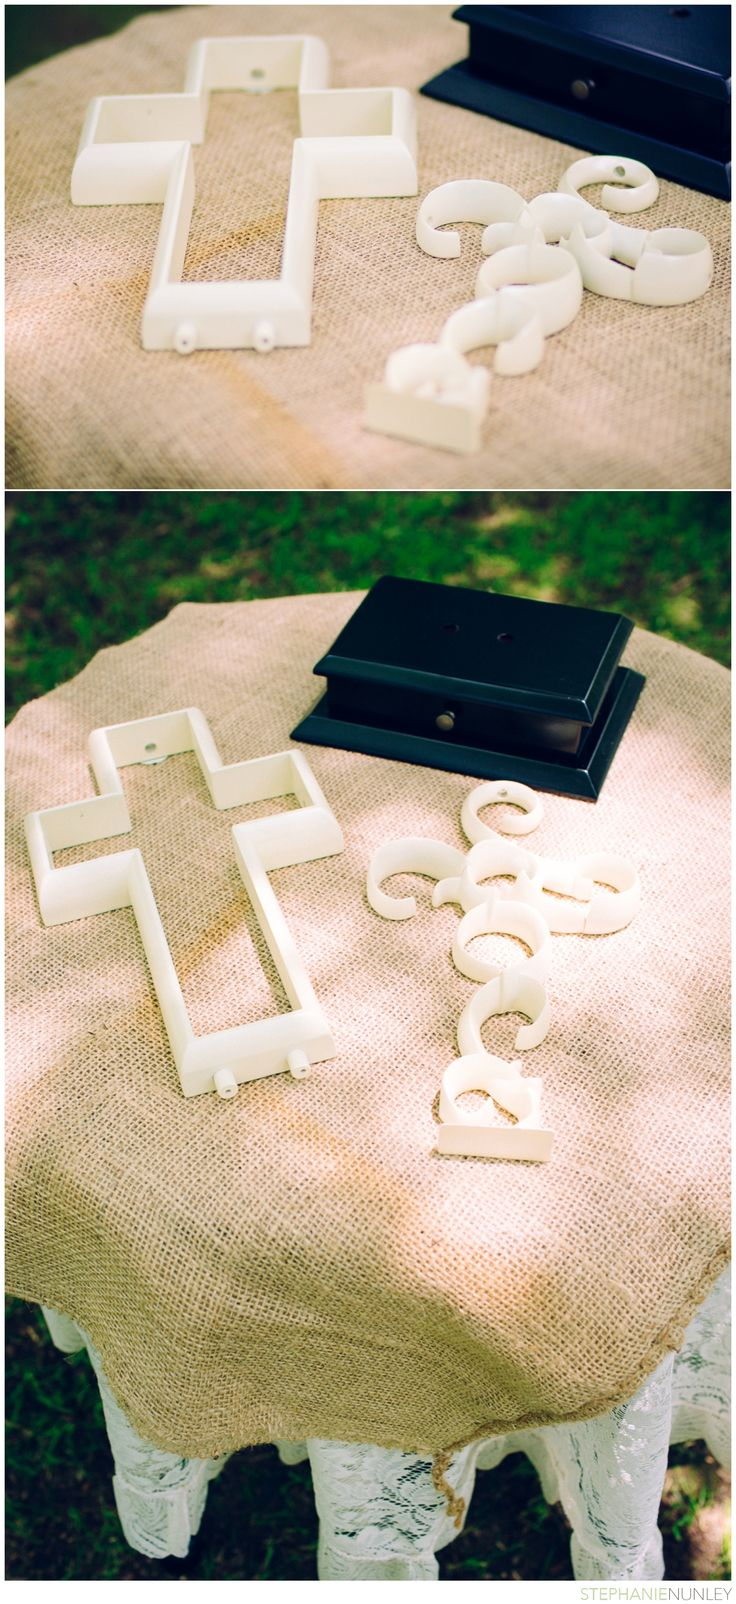 Unity cross at Christian wedding ceremony. instead of the candle? i kinda like this a lot...